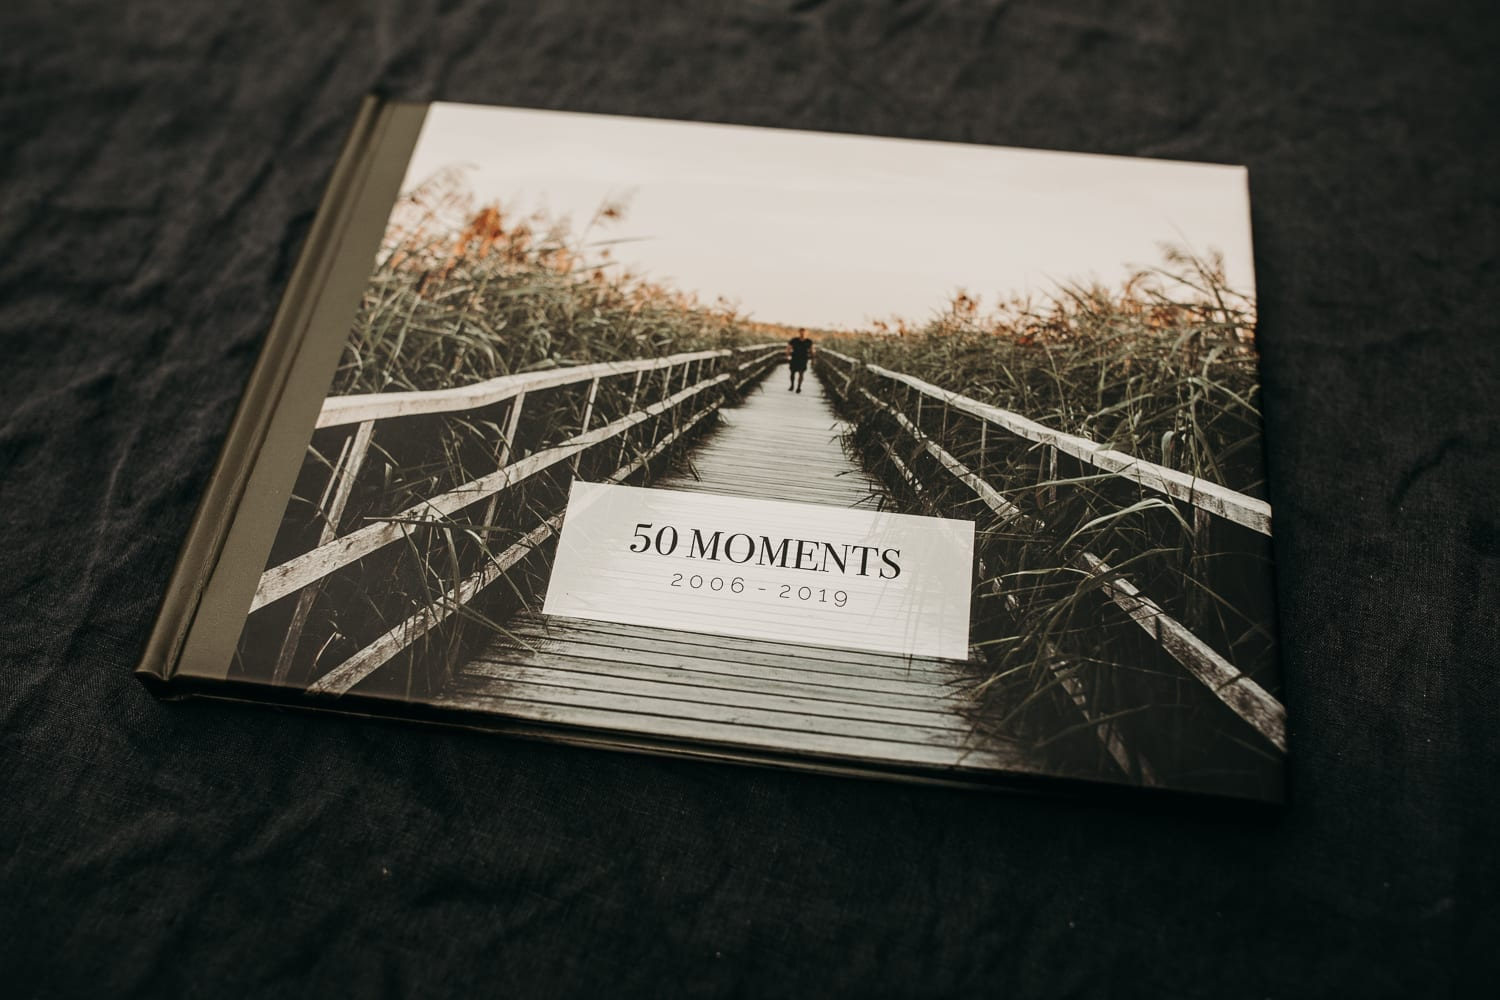 picture of a professional photo album called 50 moments with you